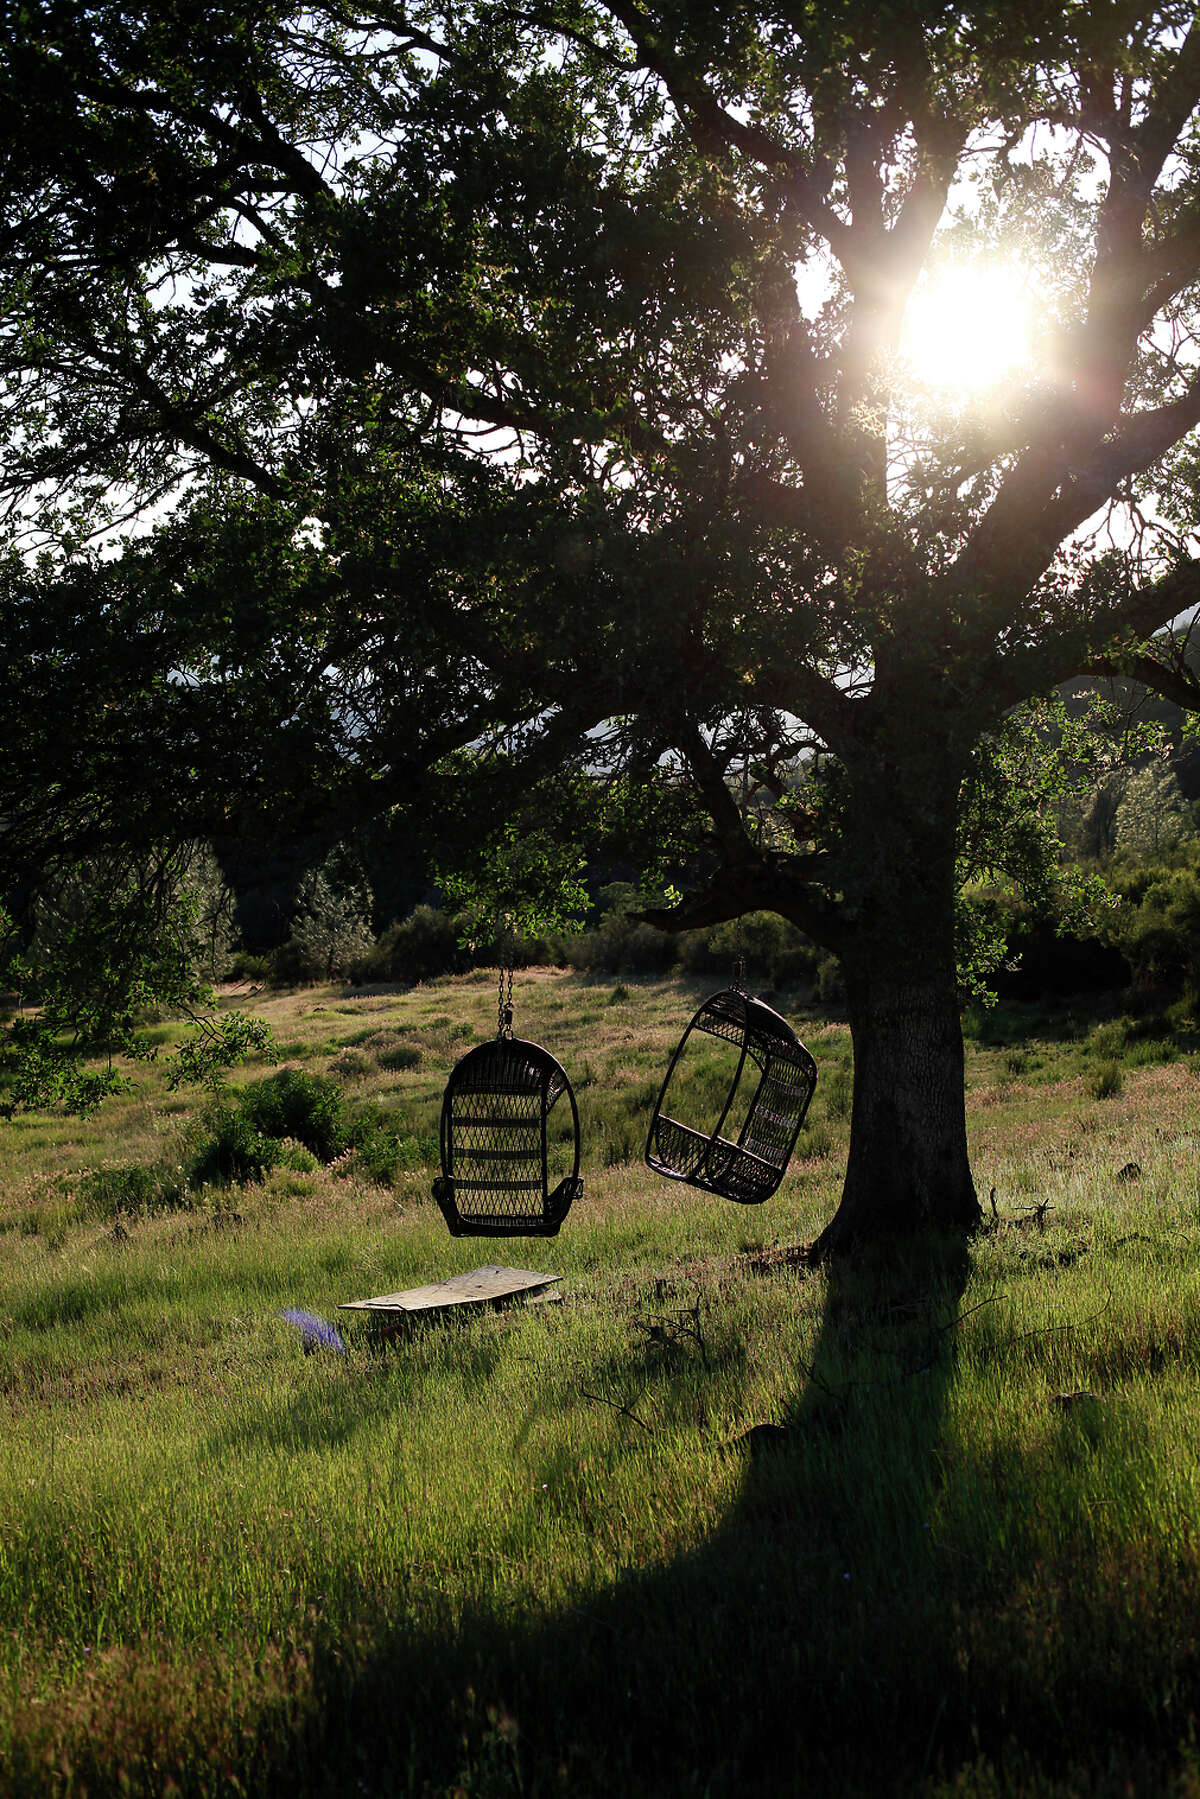 Owners of one of the lots installed these swinging basket chairs - perfect for relaxing.